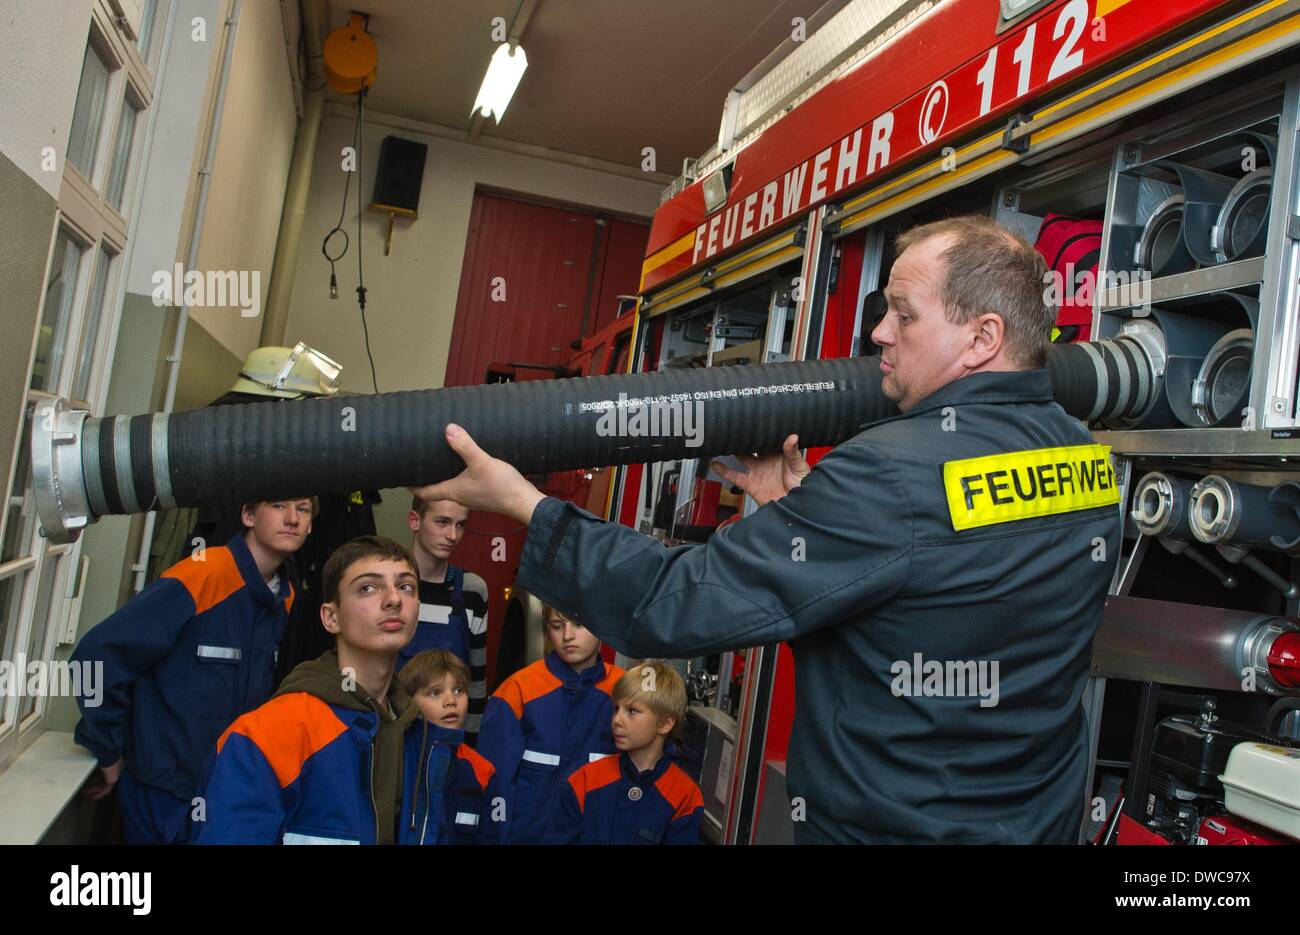 Andreas Fuhlbruegge instructs young fire fighters during a training session at the volunteer fire department in Kistow in Frankfurt Oder, Germany, 27 February 2014. Every 14 days, the young fire fighters meet for training at the fire department. Even though there isn't a shortage of new recruits in Klitsow, but the situation is different at the fire dpartments in the rest of the state. In Brandenburg there are around 48,000 fire fighters and most of them are volunteers. This number will sink as well along with the change in demographics. Photo: Patrick Pleul - Stock Image